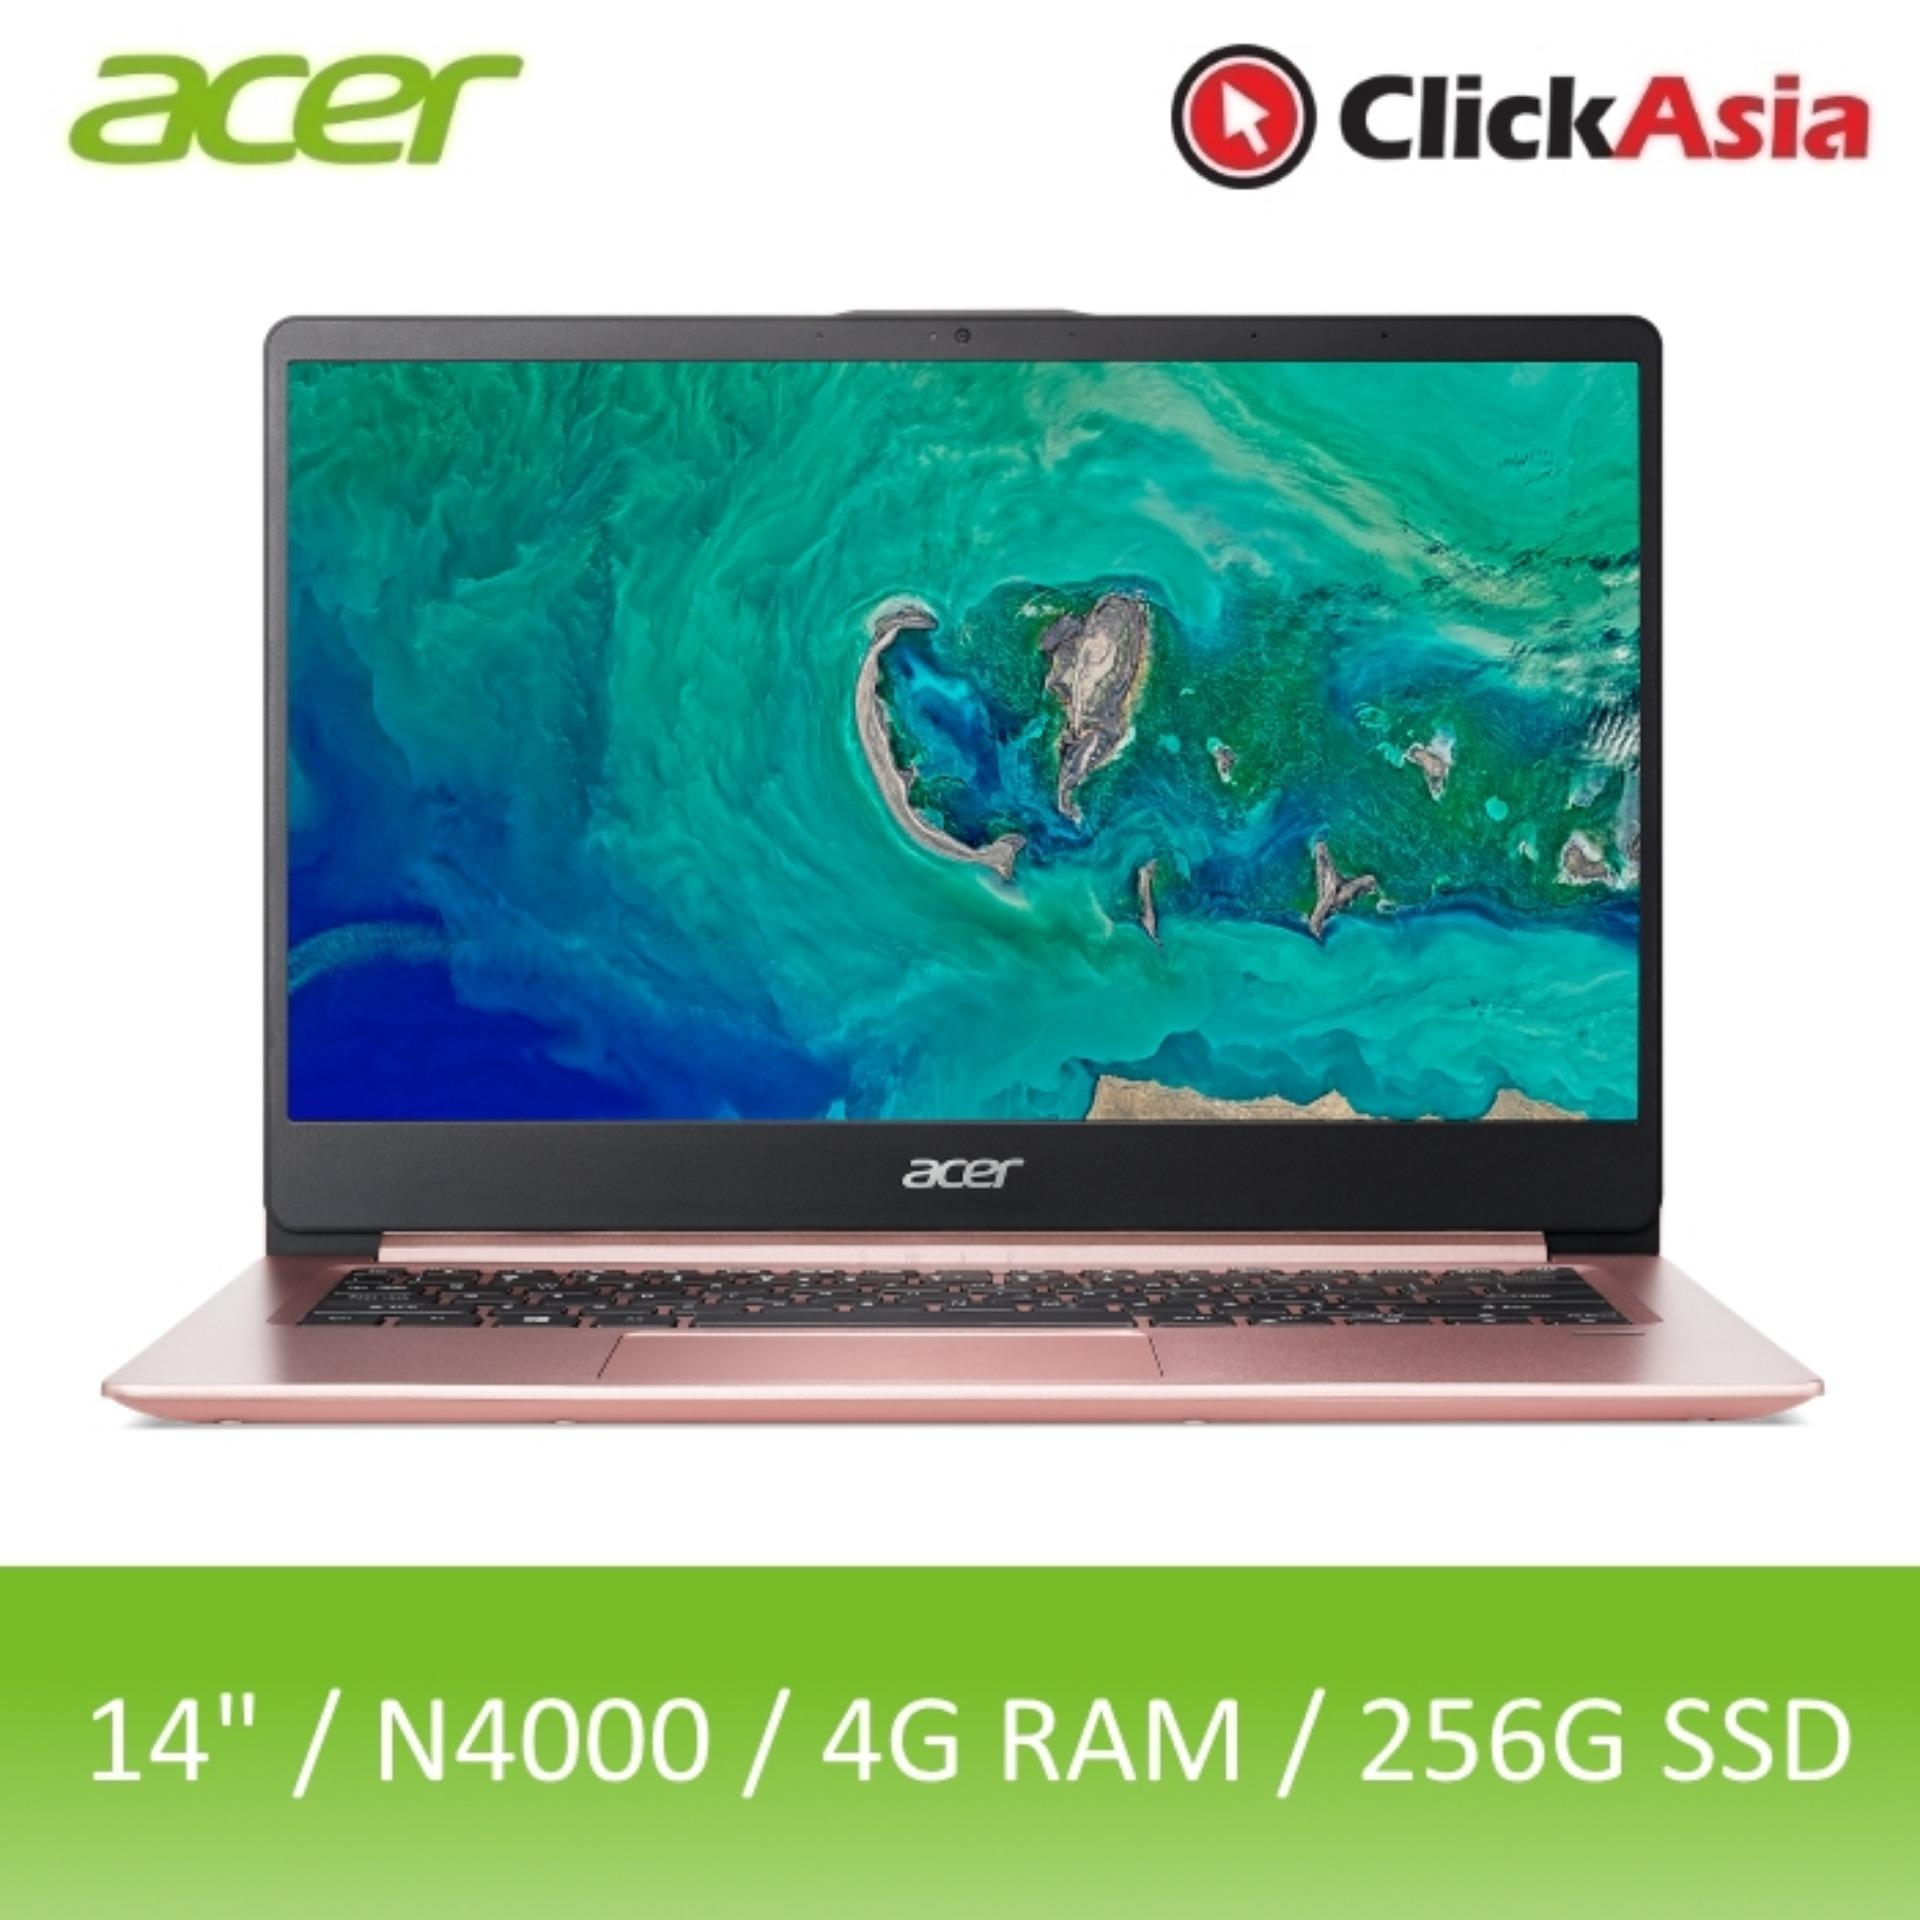 Acer Swift 1 (SF114-32-C5R6) 14-Inch IPS Narrow Border Thin and Light Laptop (Pink)